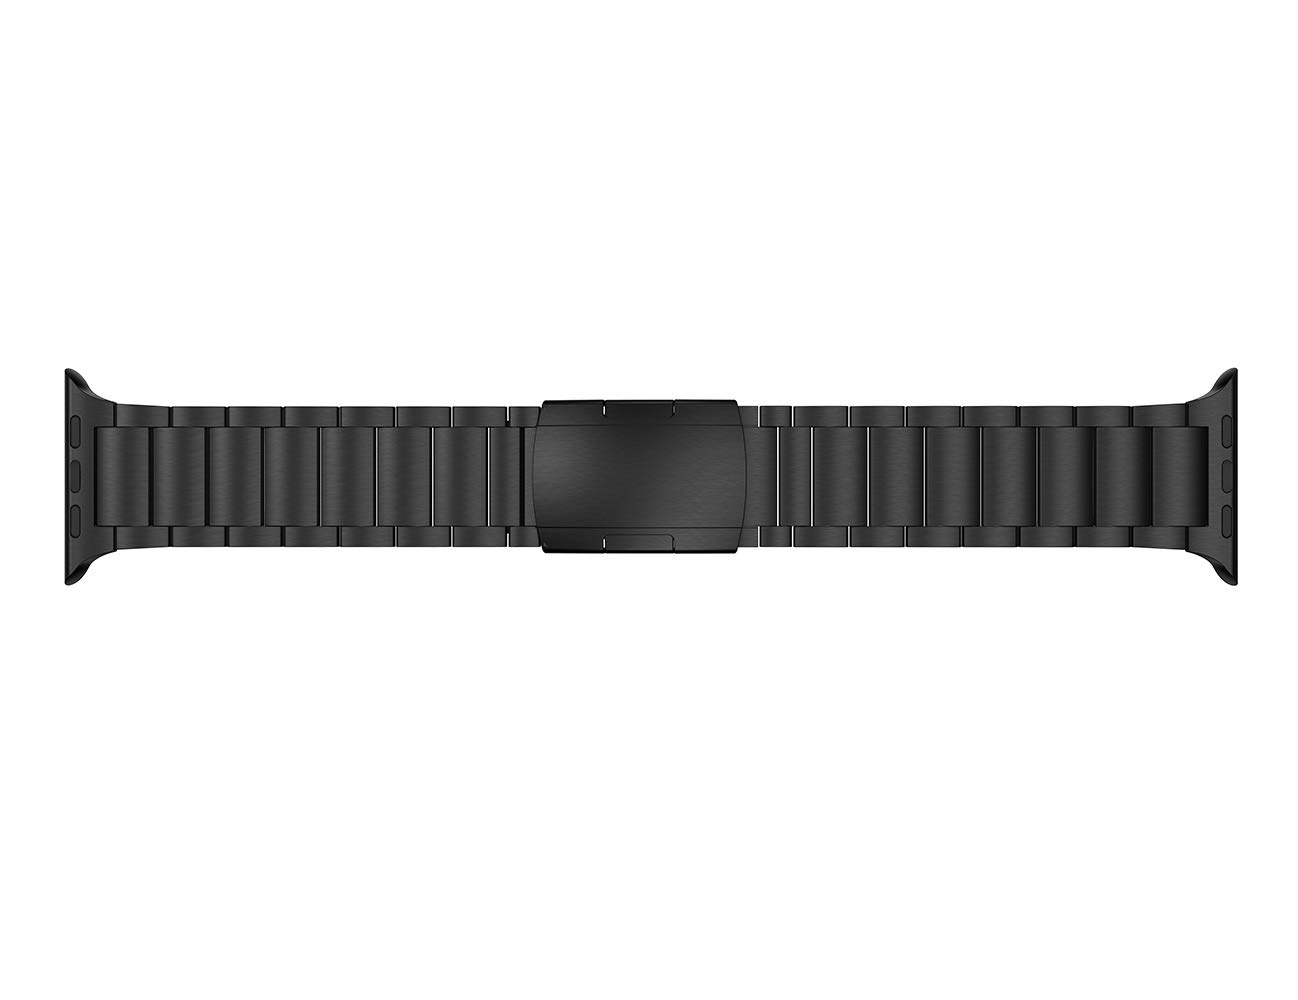 LDFAS Compatible for Apple Watch Band 44mm/42mm, Titanium Metal Watch Strap with Double Button Clasp Compatible for Apple Watch Series 4/3/2/1, Black by LDFAS (Image #4)